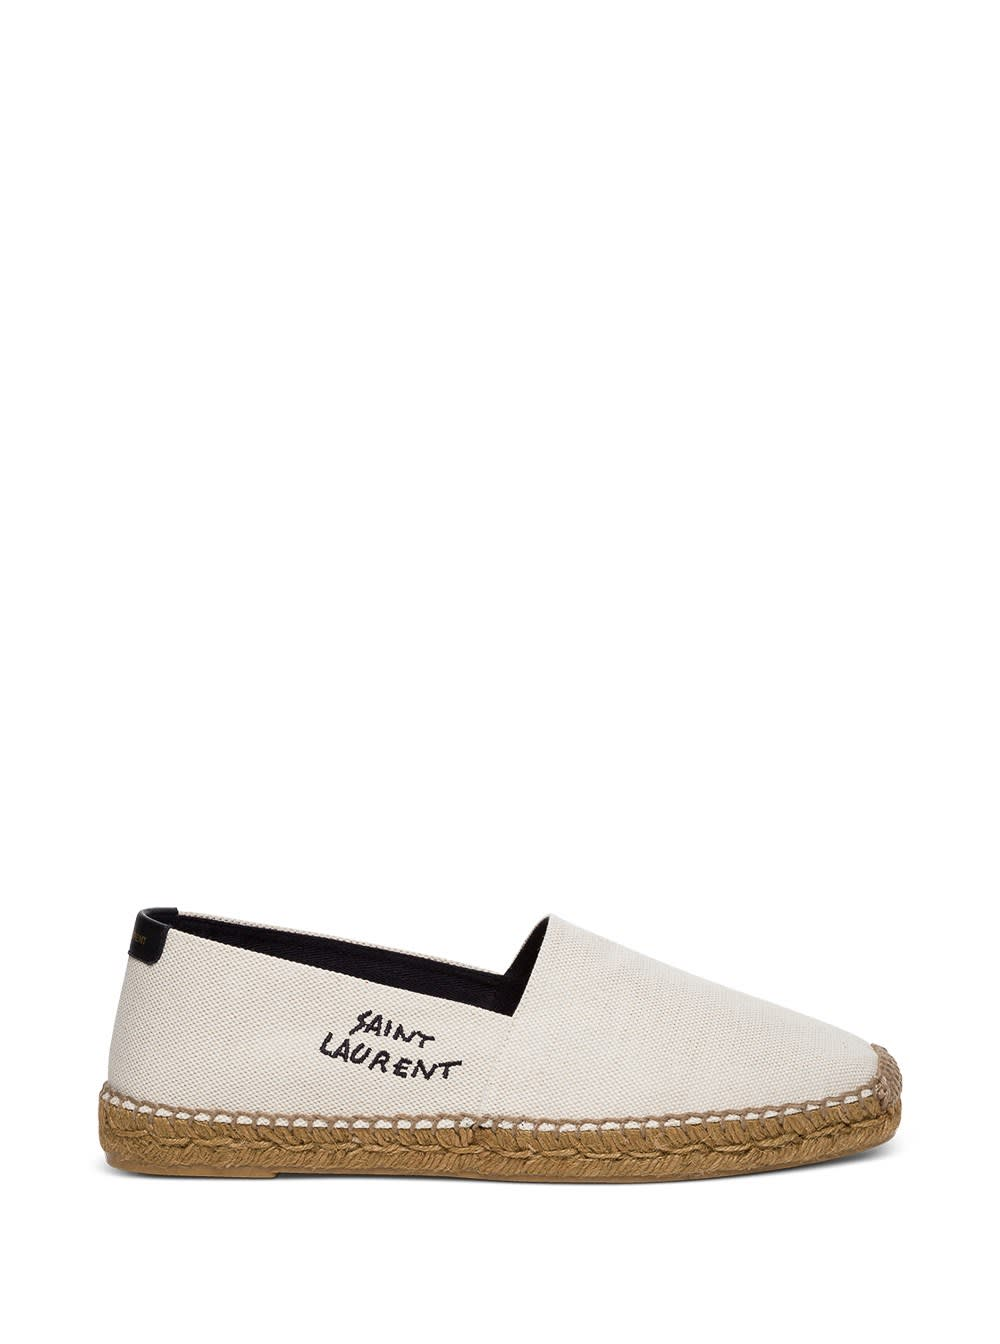 Canvas Espadrilles With Embroidery Logo